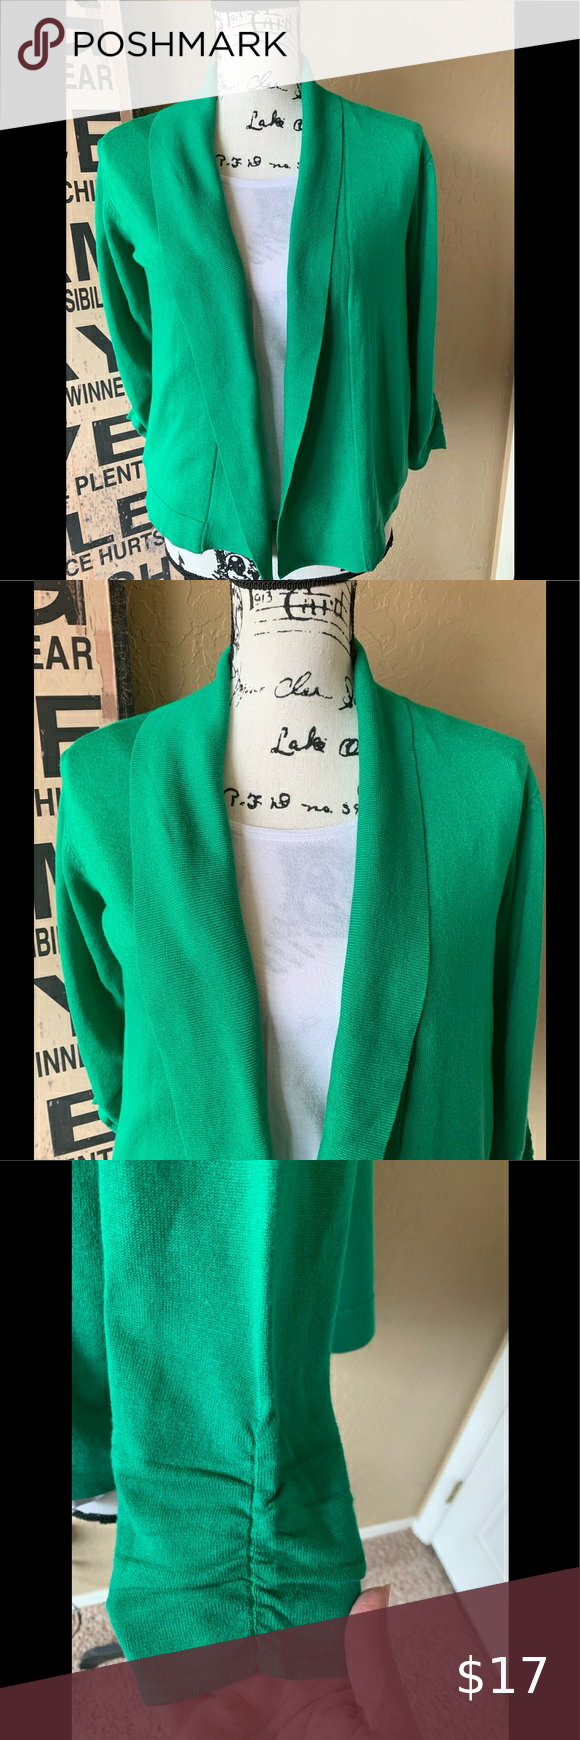 Check out this listing I just found on Poshmark: Kelly Green sweater. #shopmycloset #poshmark #shopping #style #pinitforlater #Love Scarlett #Sweaters